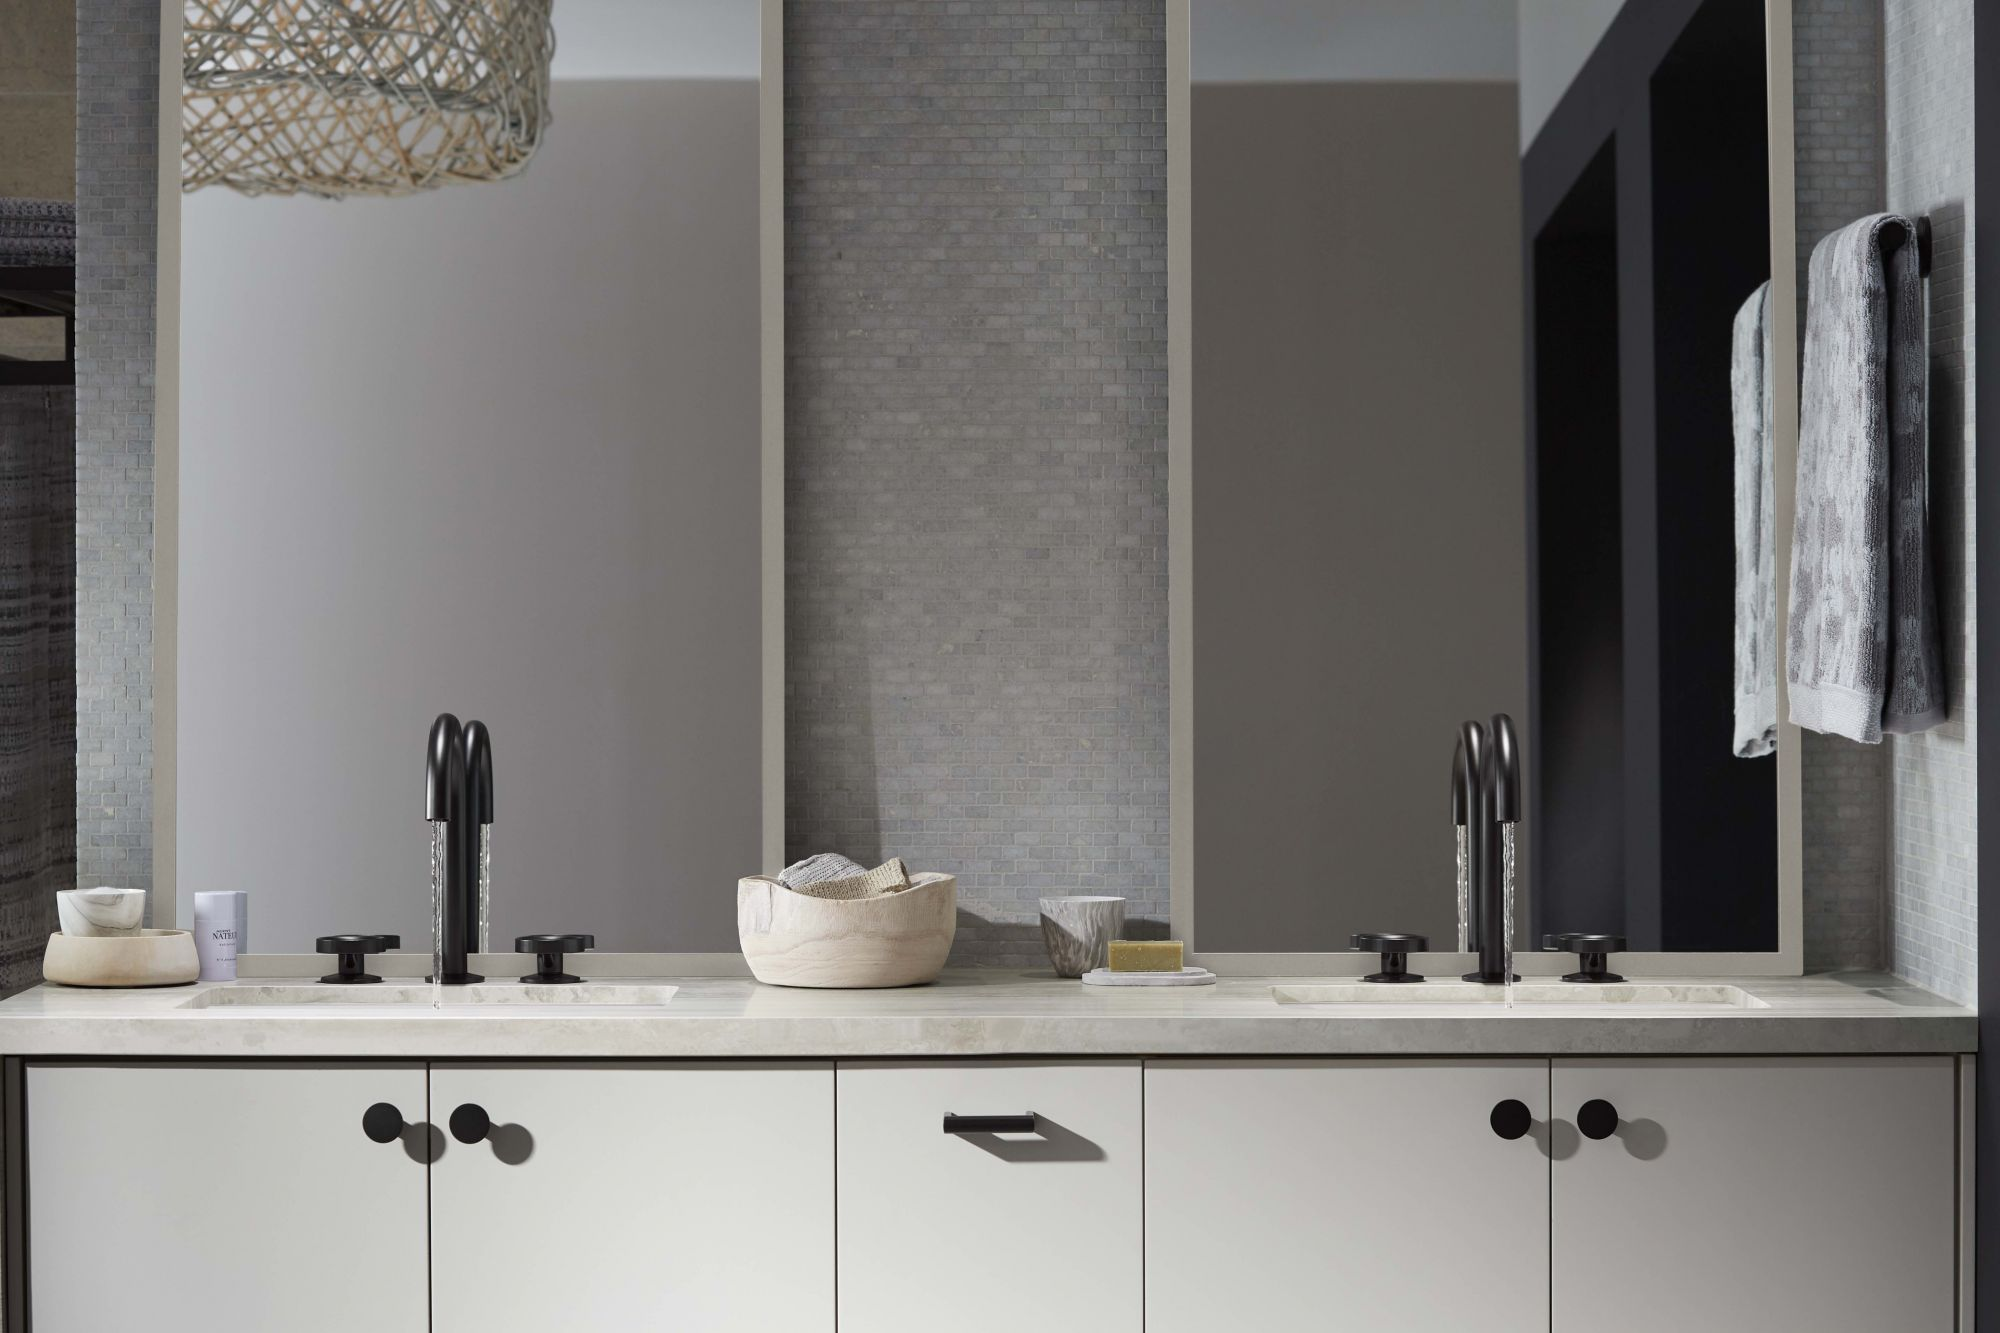 Living The Leading Edge Of Design And Technology With Kohler